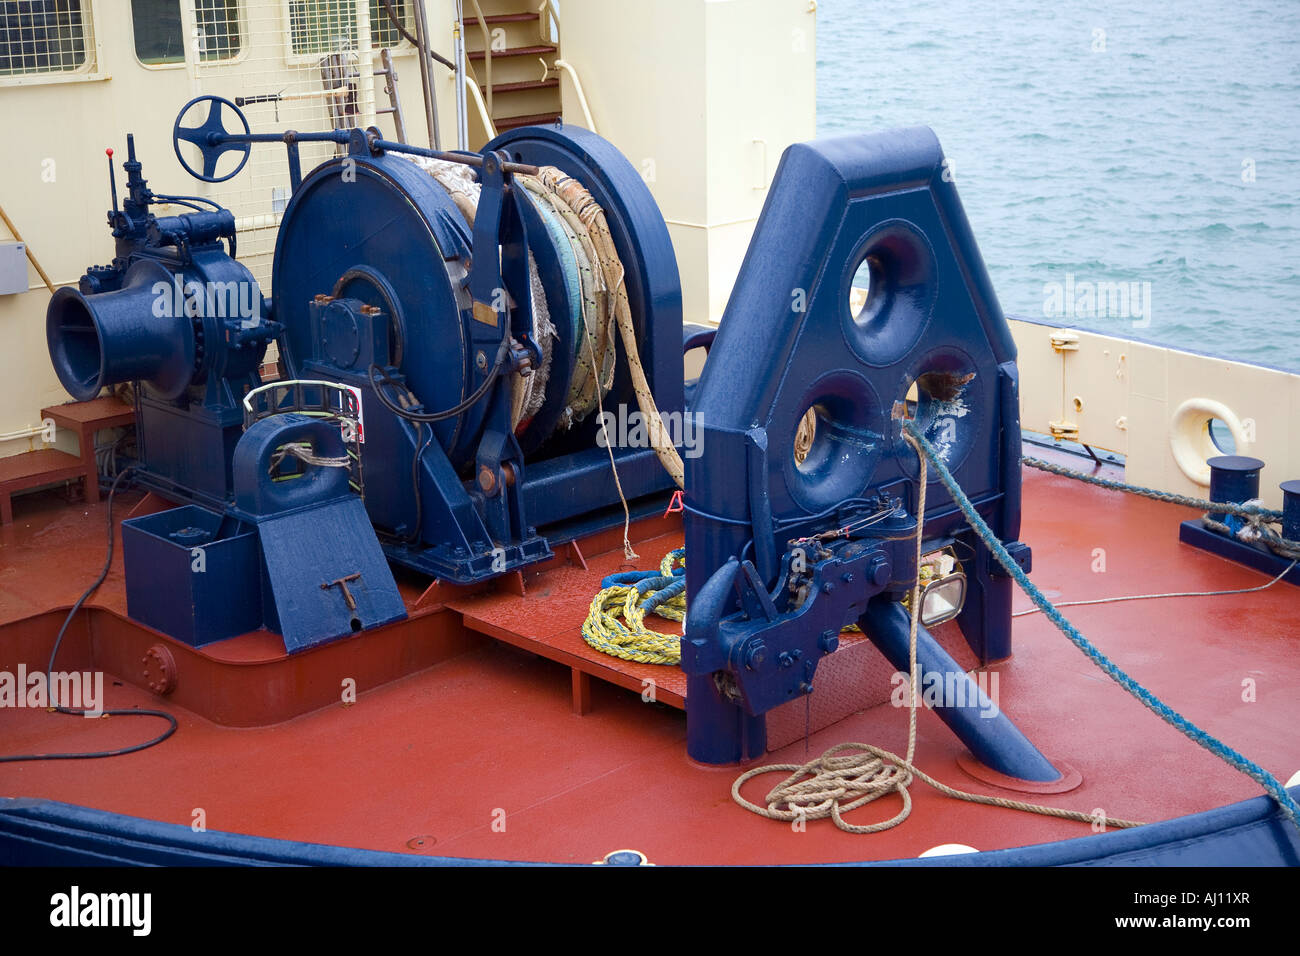 Power winch and fairlead on tug boat stern in dock - Stock Image